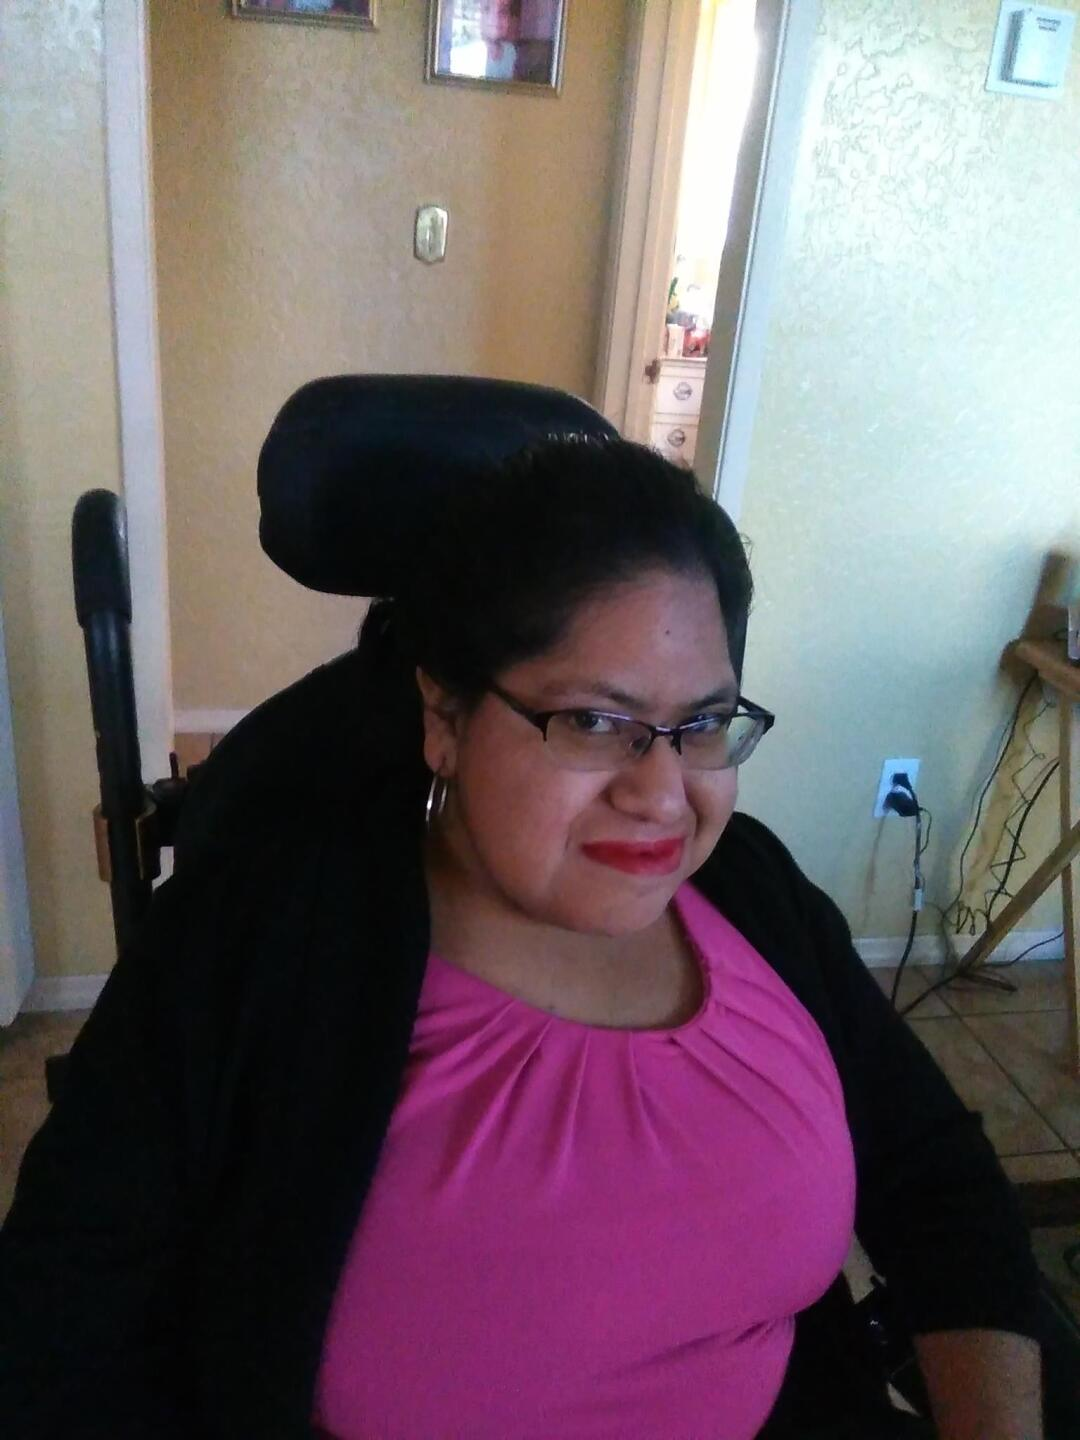 Miriam Villalobos, a 30-year-old Watsonville resident, died of COVID-19 complications in December 2020.